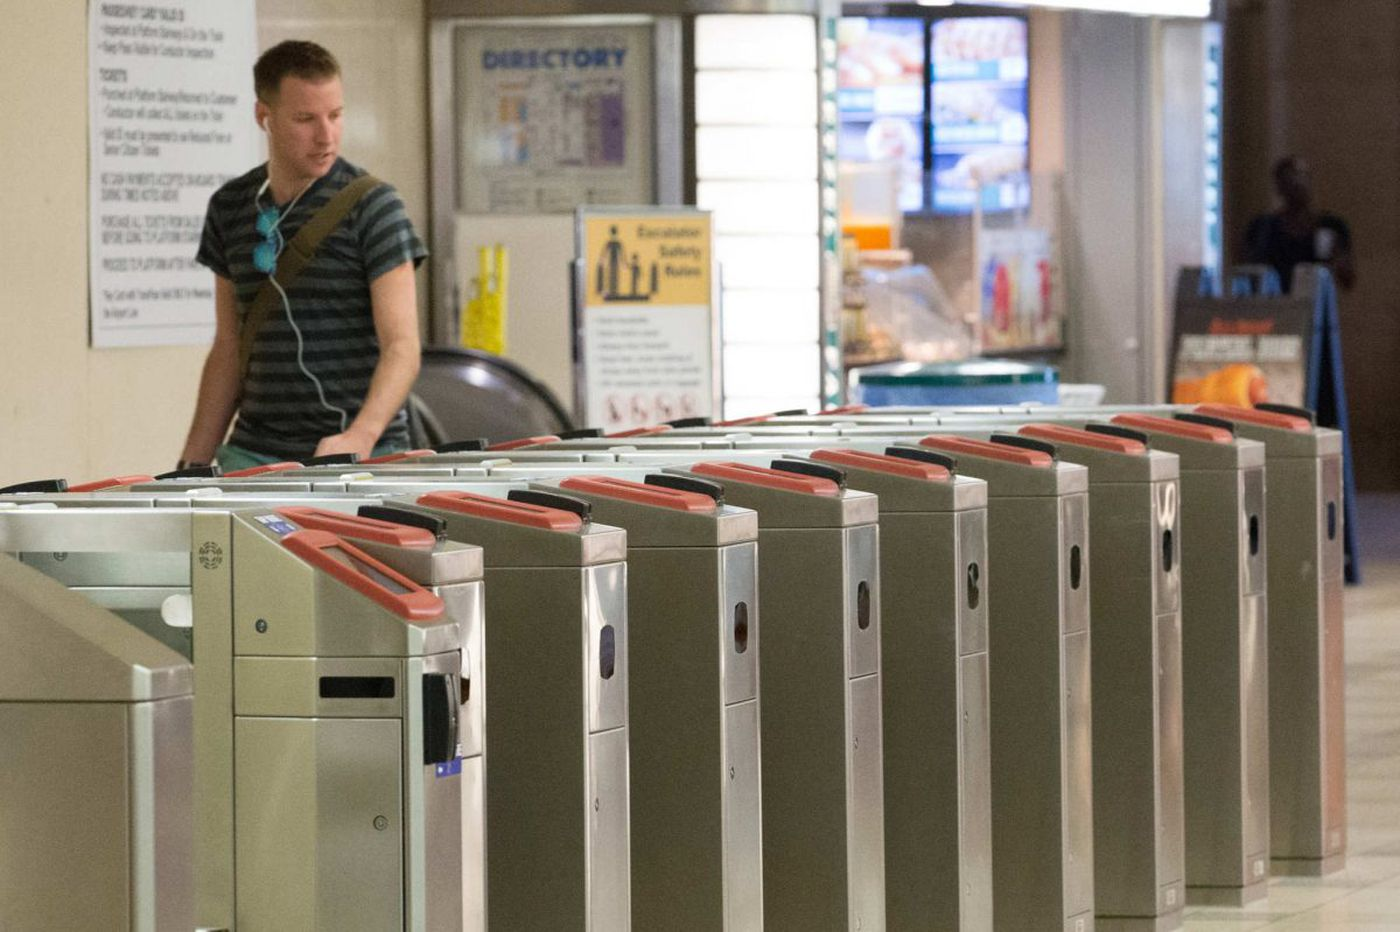 There's no getting around the clumsy design of SEPTA's new fare gates | Inga Saffron